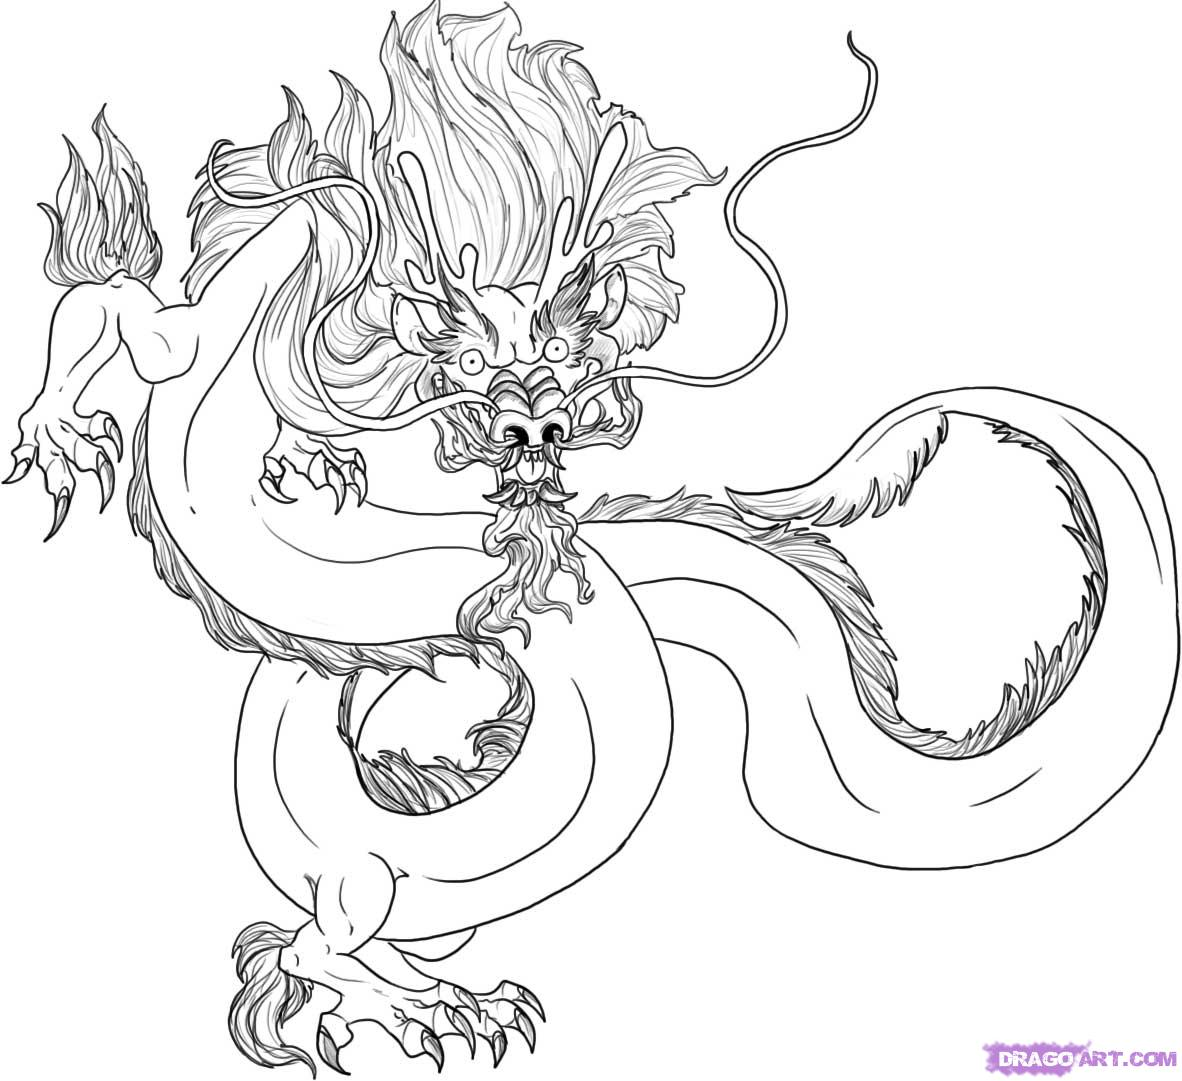 ColoringPages: Simple and easy Dragon Coloring Pages Free ... | 1081x1182